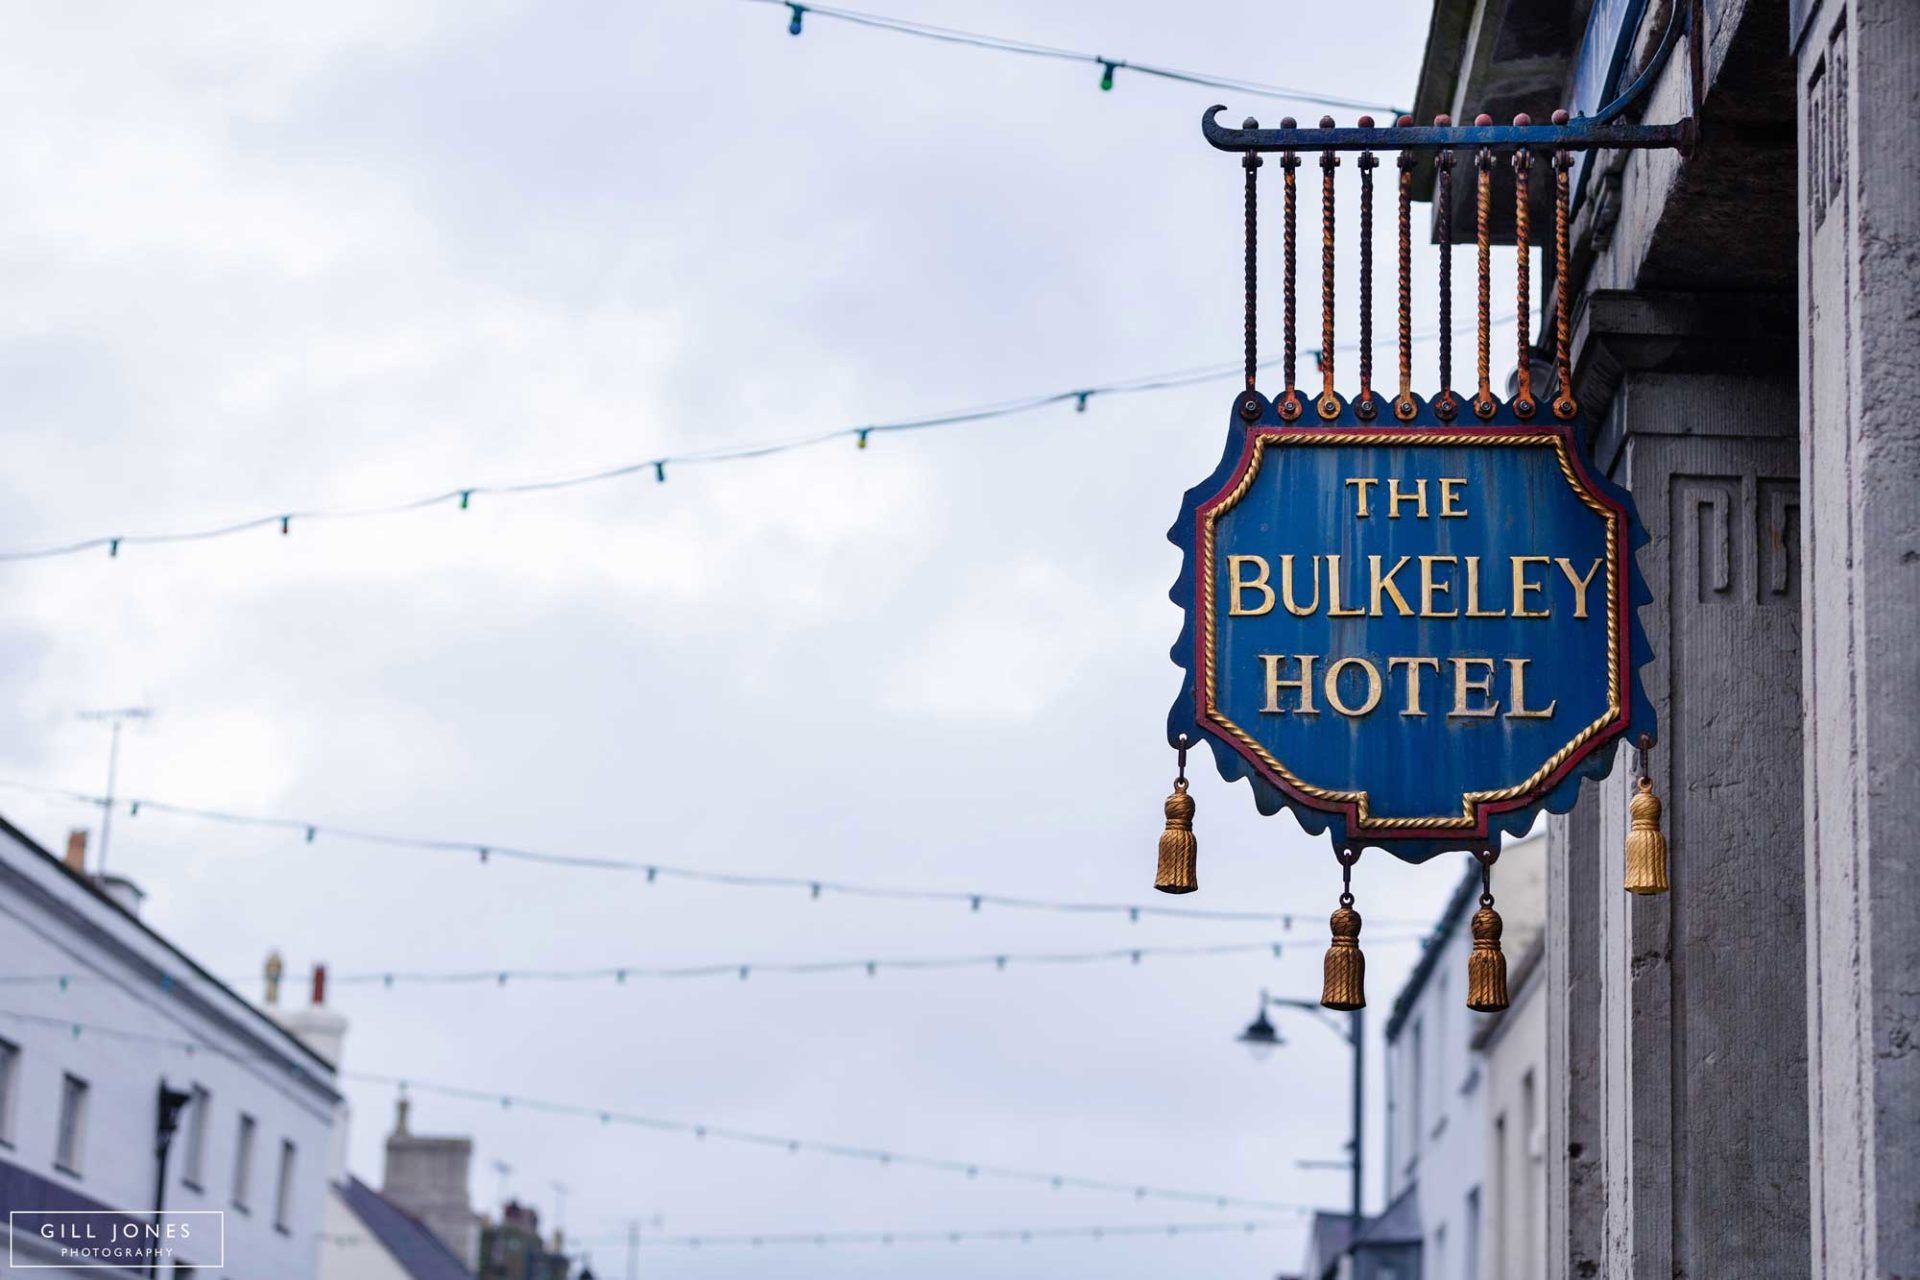 The Bulkeley Hotel's sign